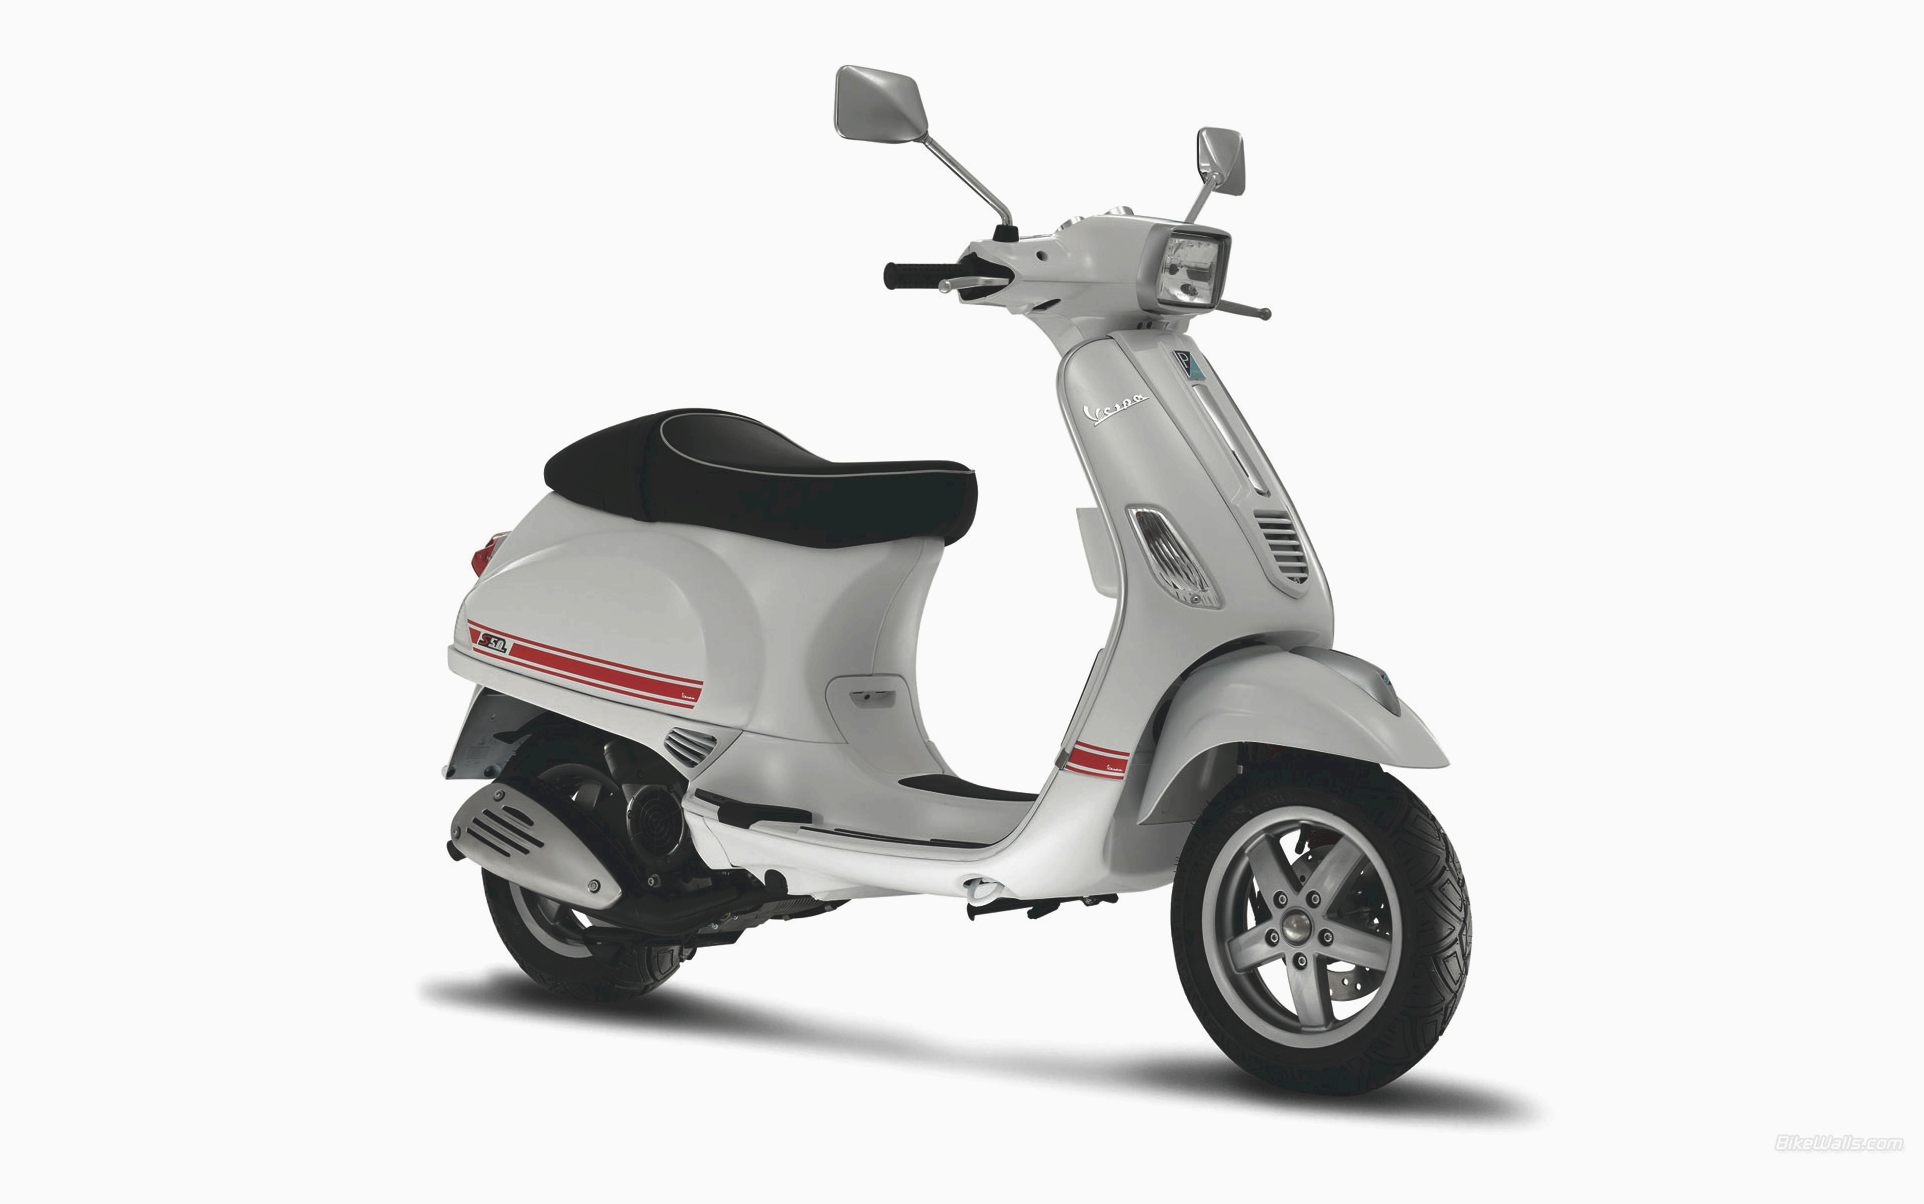 vespa s 125 pics specs and list of seriess by year. Black Bedroom Furniture Sets. Home Design Ideas